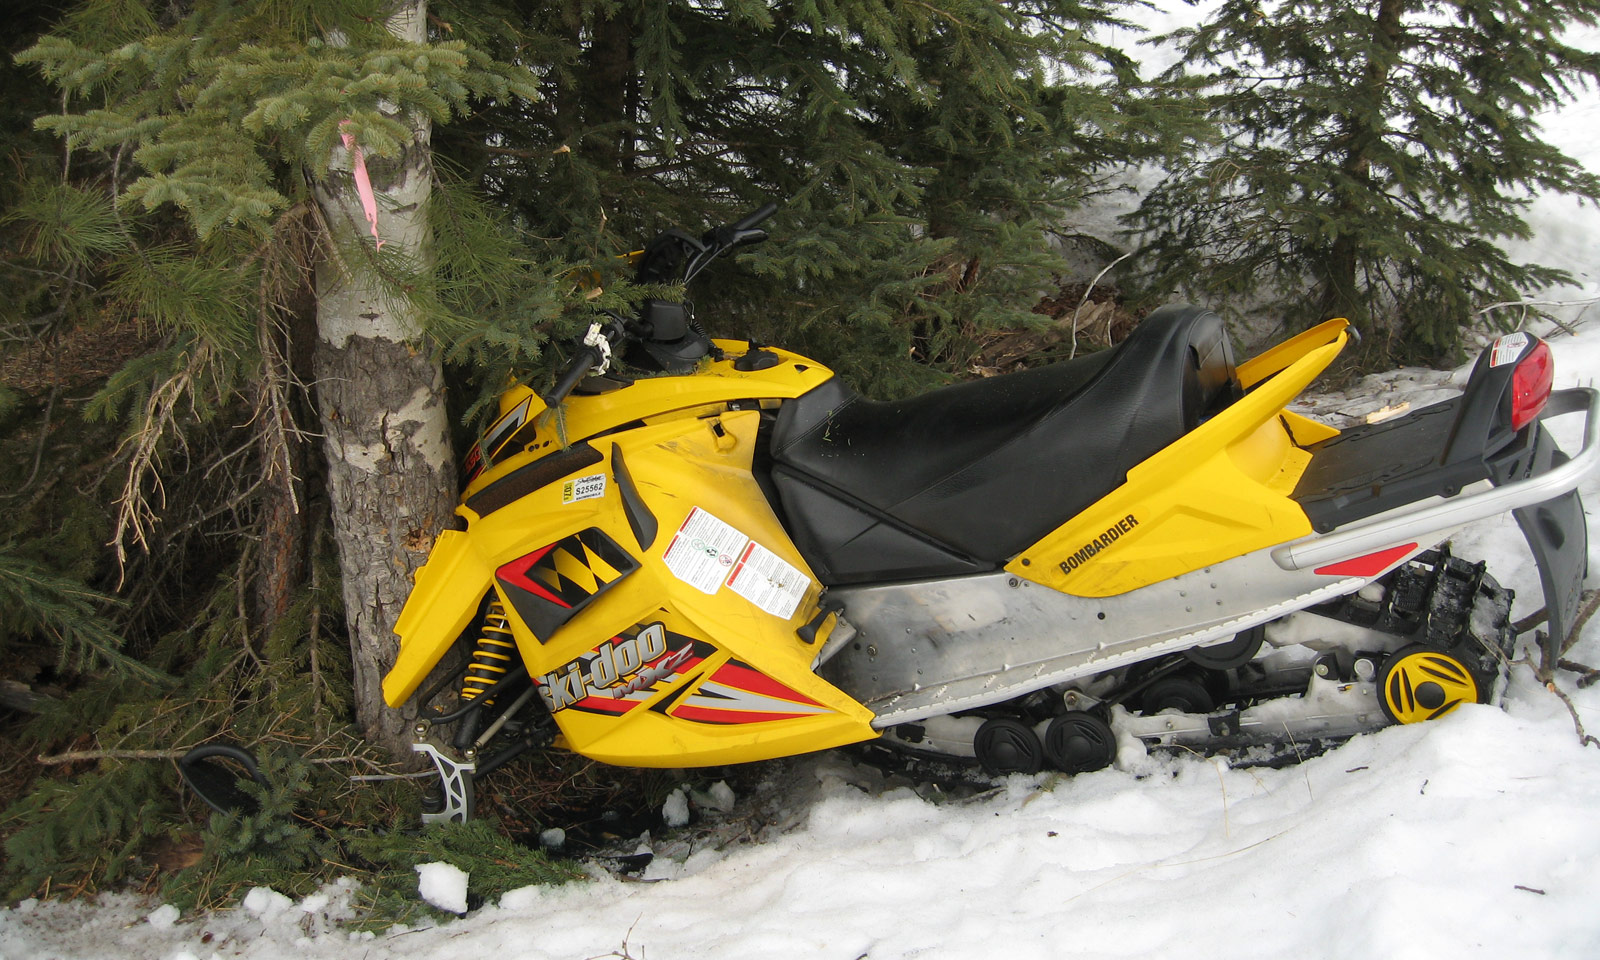 Snowmobile crashed into tree